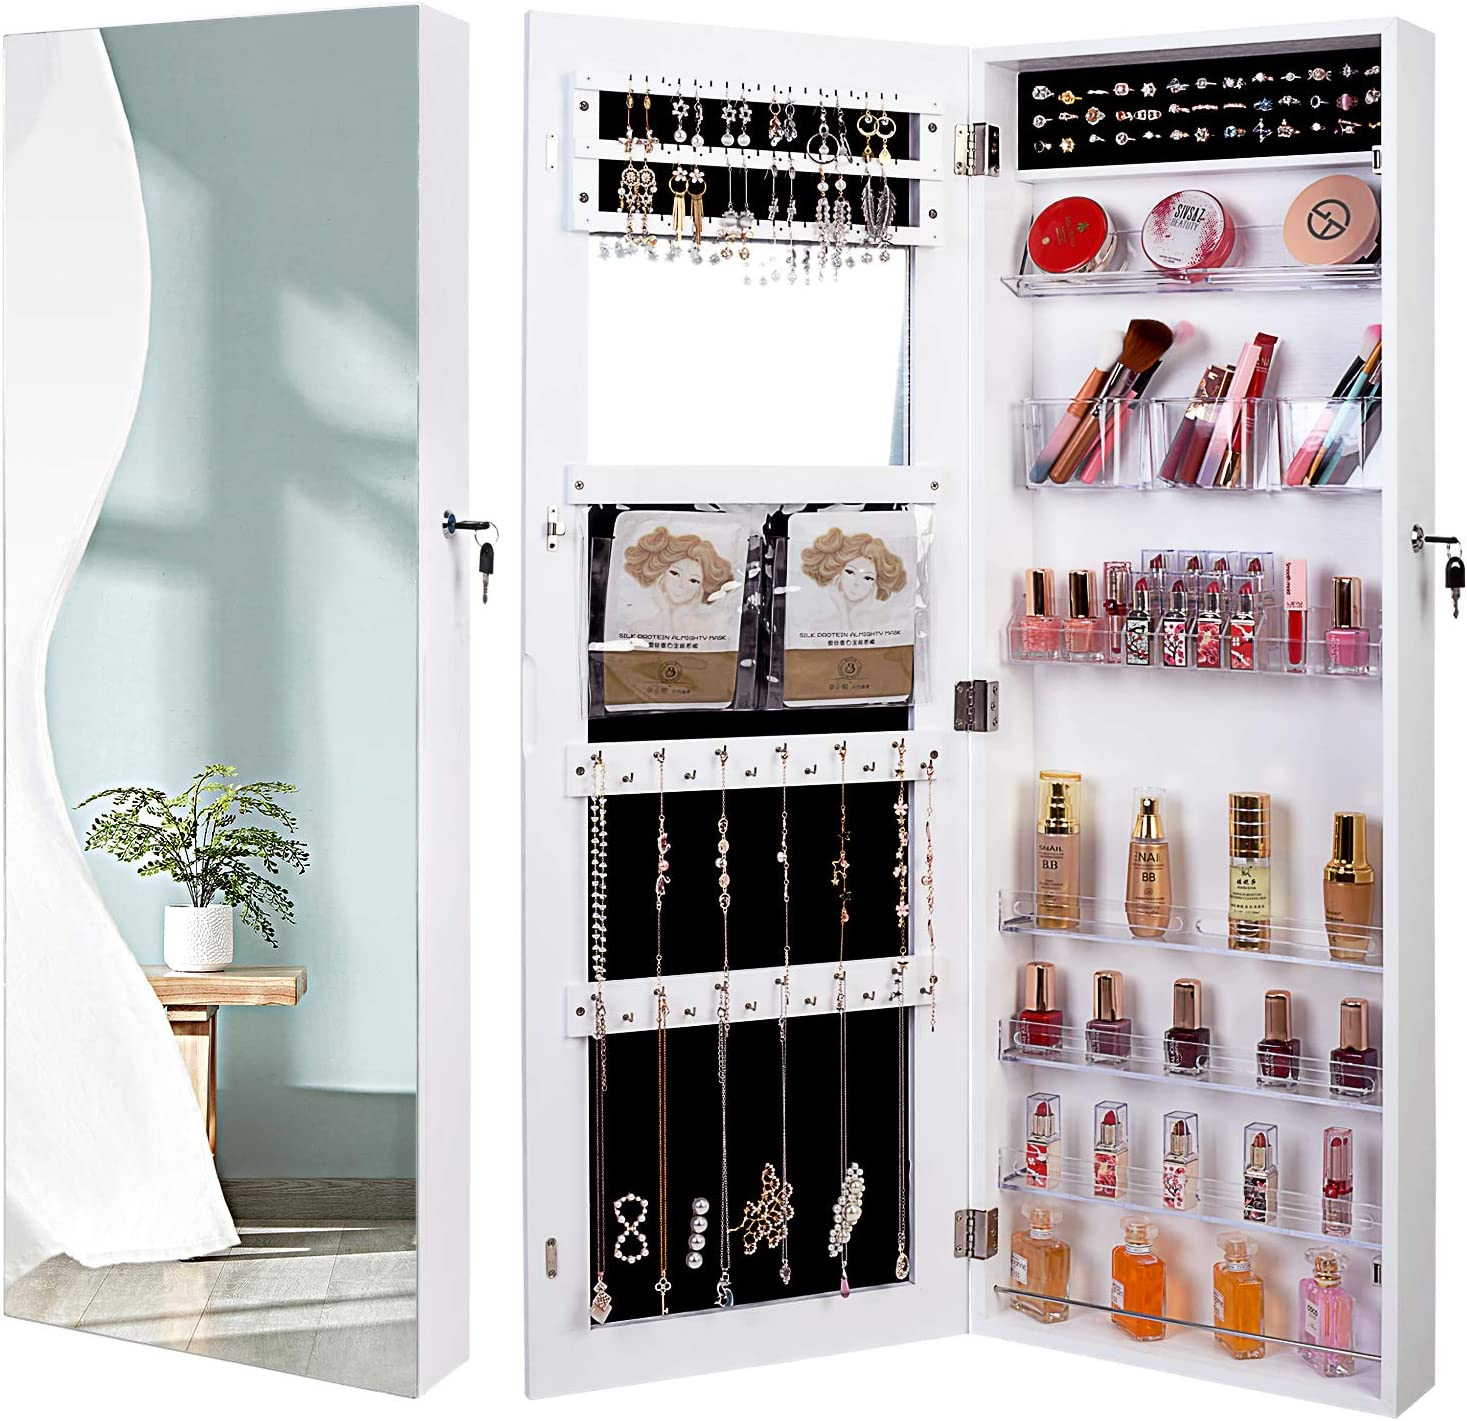 QUANYOU 6 LED Lights Lockable Full Mirror Full Screen Jewelry Organizer Wall Mounted/Door Mounted/Jewelry Cabinet Jewelry Armoire with Mirror/Full Length Mirror Hanging Mirror 7025 (White) : Clothing, Shoes & Jewelry